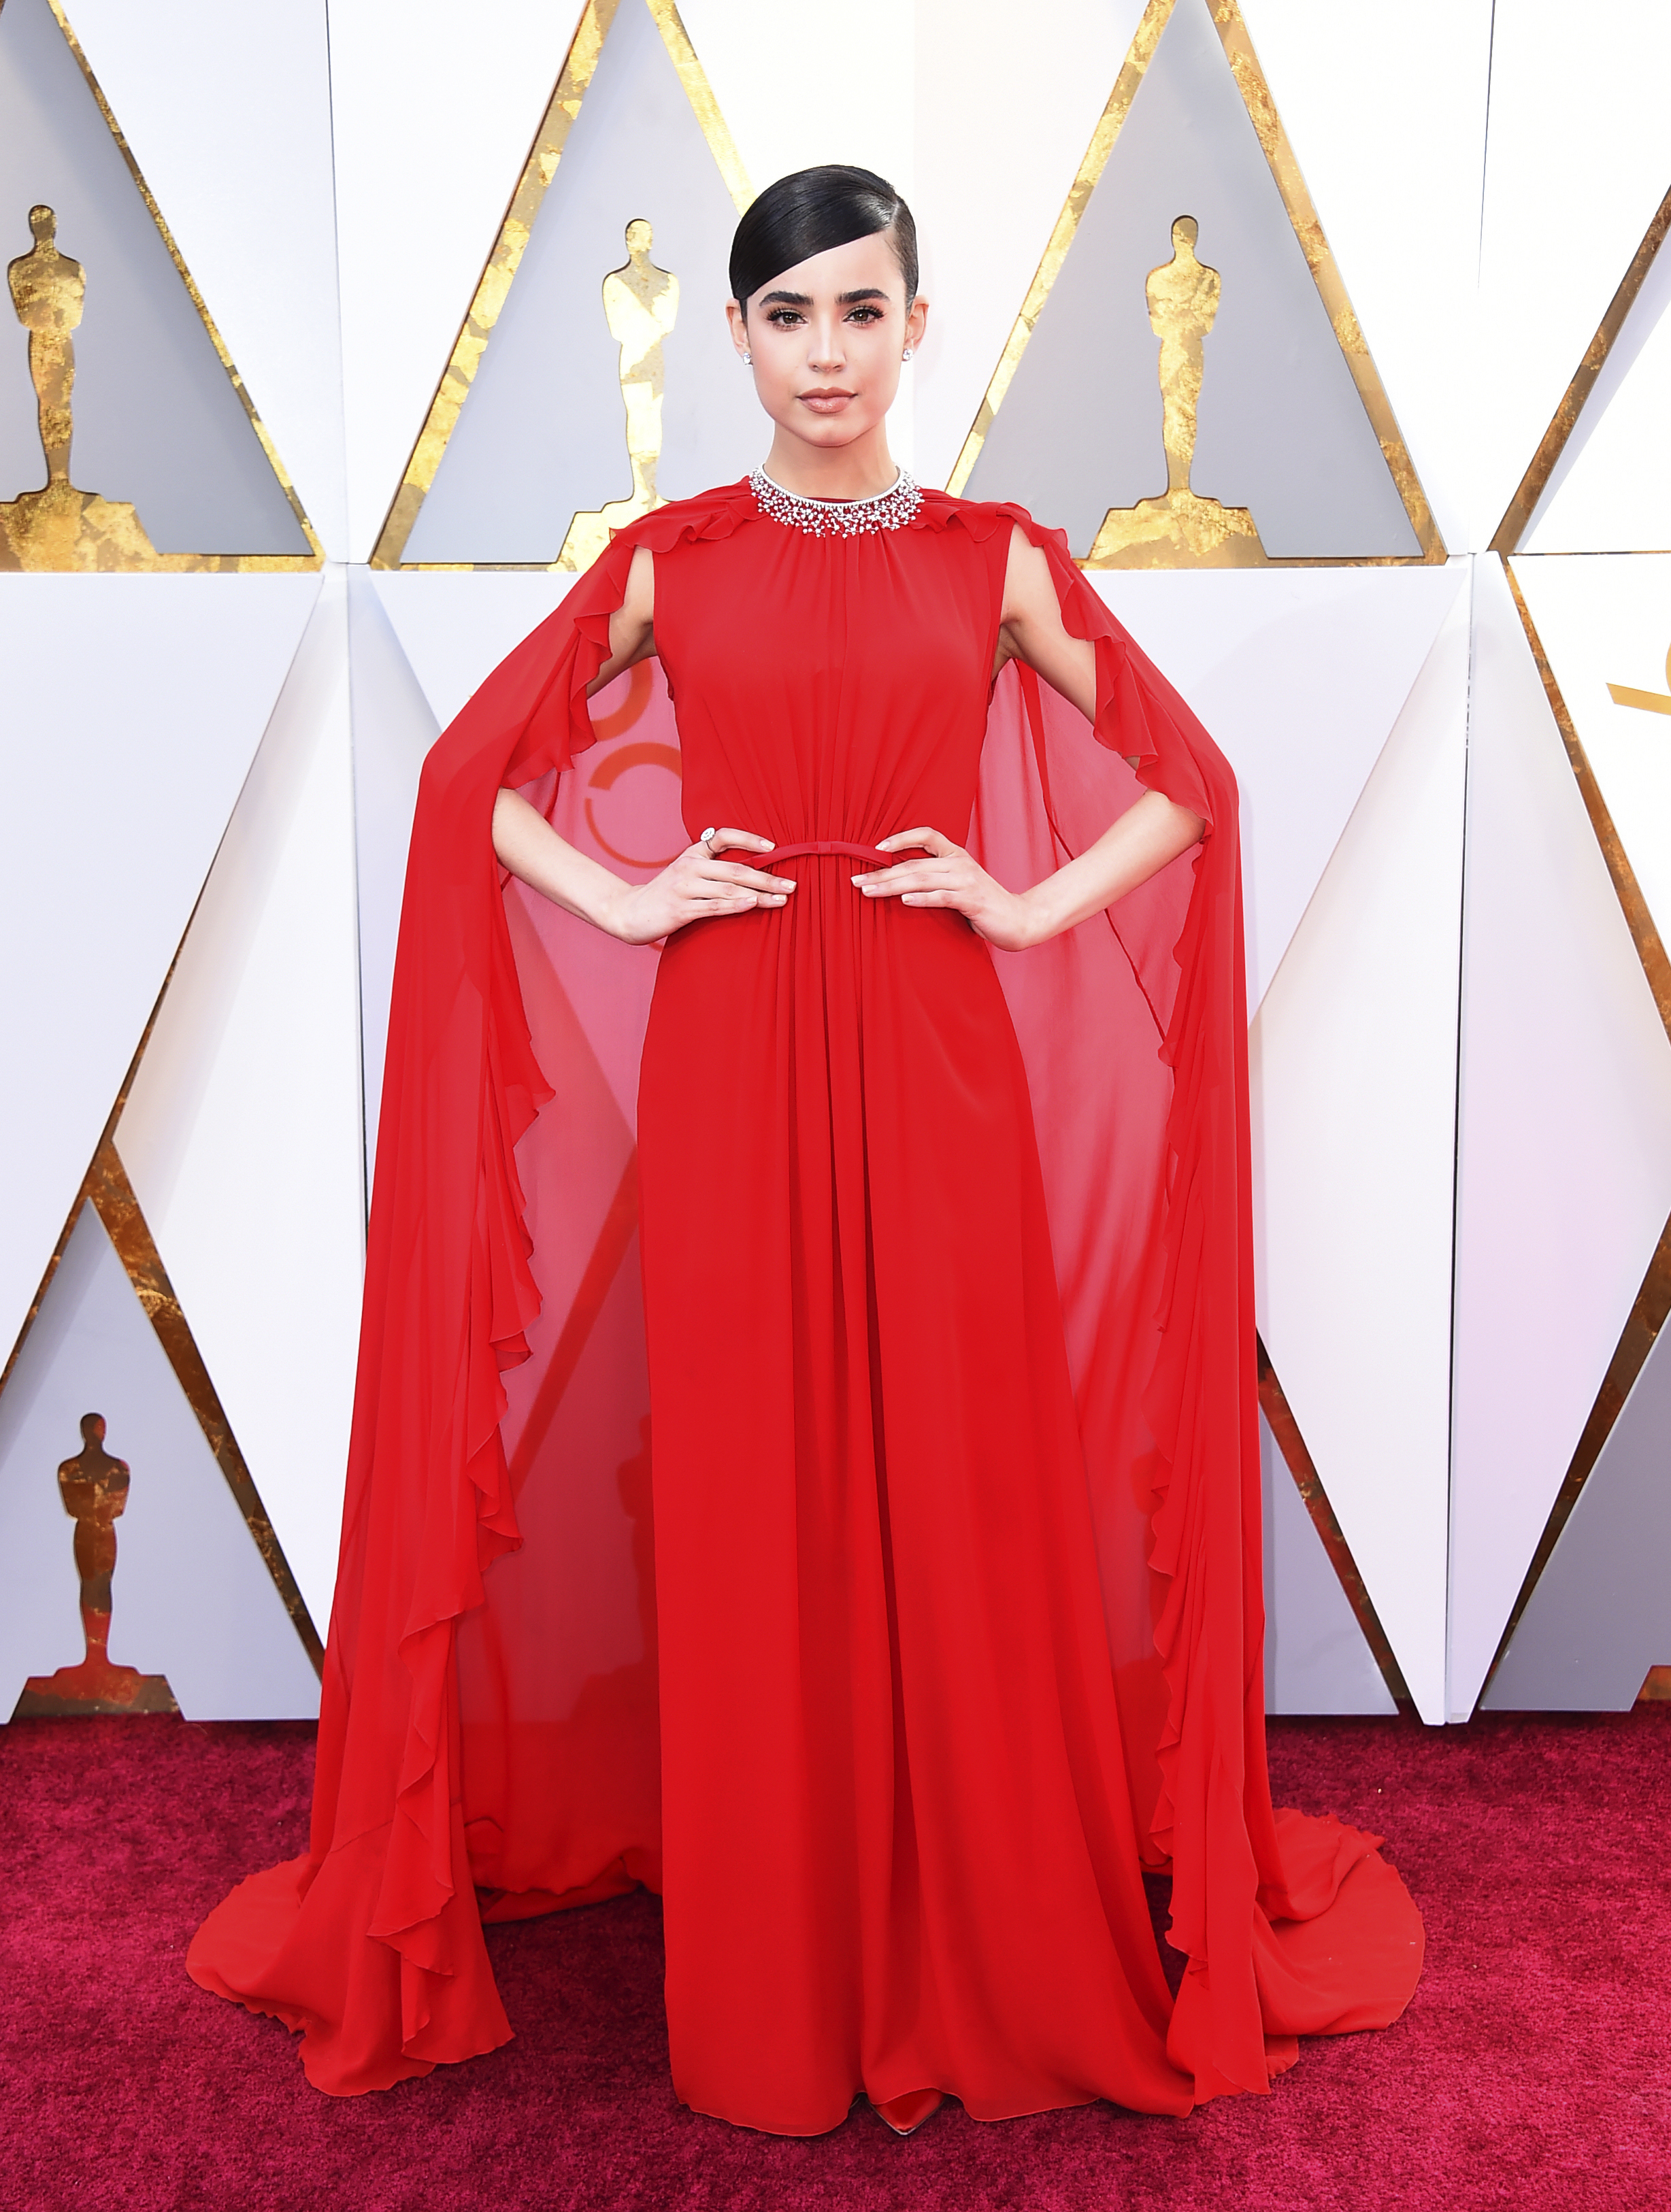 "<div class=""meta image-caption""><div class=""origin-logo origin-image none""><span>none</span></div><span class=""caption-text"">Sofia Carson arrives at the Oscars on Sunday, March 4, 2018, at the Dolby Theatre in Los Angeles. (Jordan Strauss/Invision/AP)</span></div>"